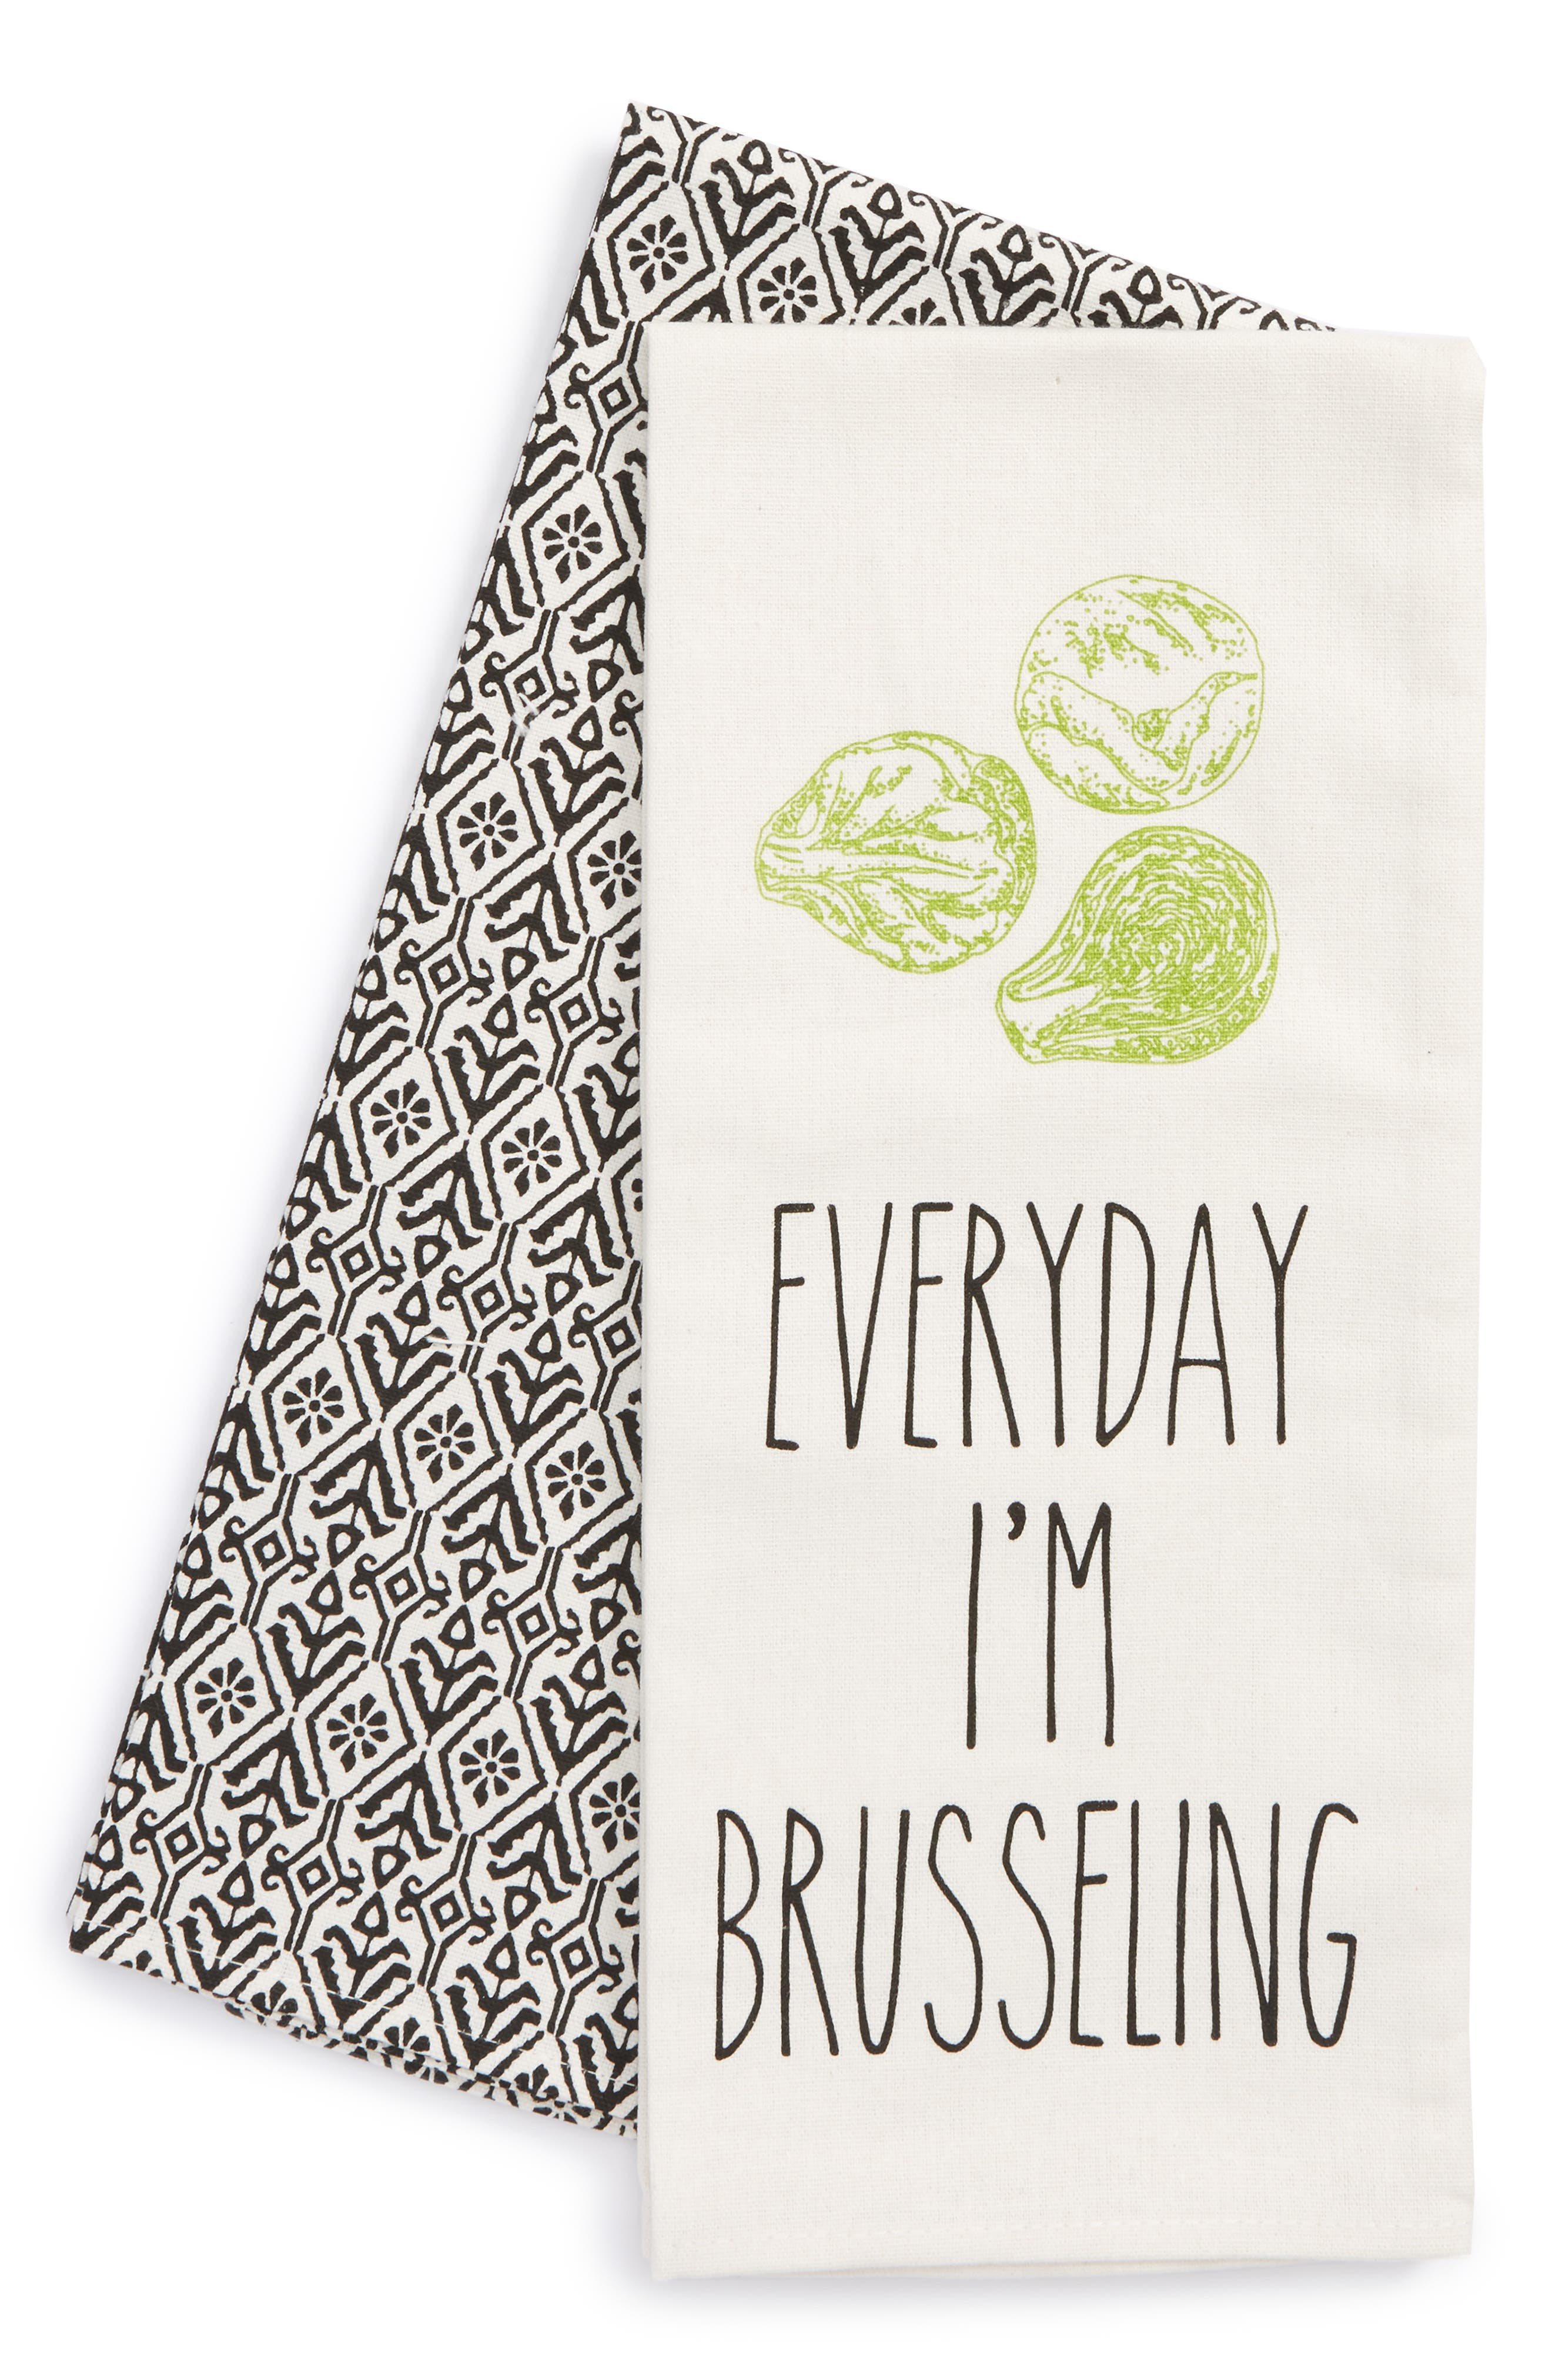 Brusseling Set of 2 Dish Towels,                             Main thumbnail 1, color,                             900